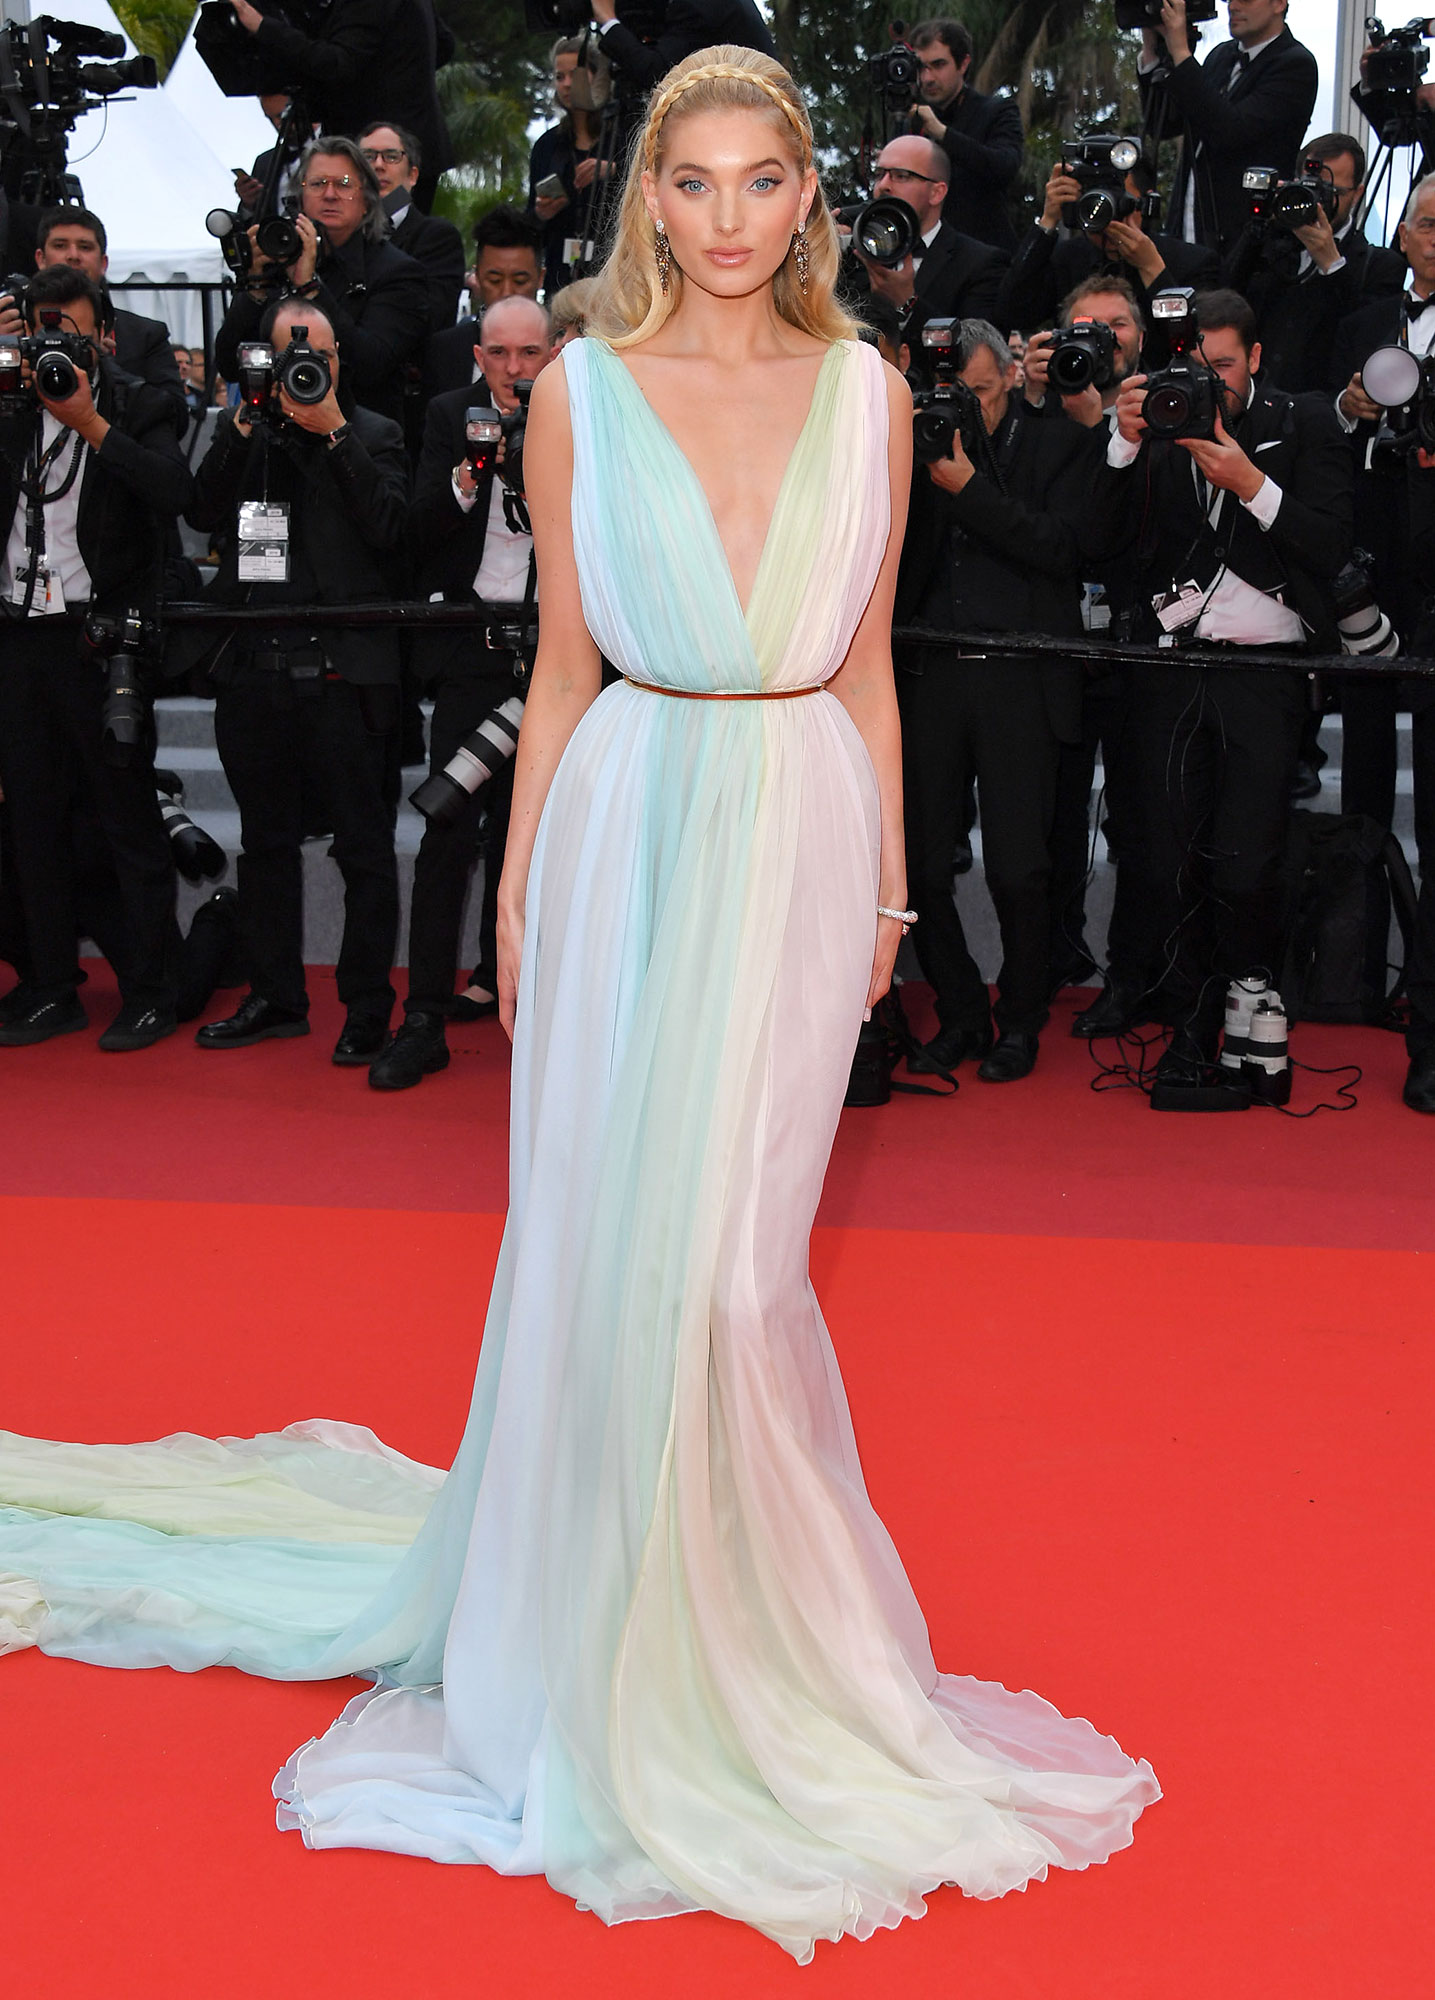 Stepping Out in Style at Cannes Film Festival - Pretty in a pastel Etro gown and Grisogono jewels, the model brought some color to the red carpet at the A Hidden Life screening on Sunday, May 19.